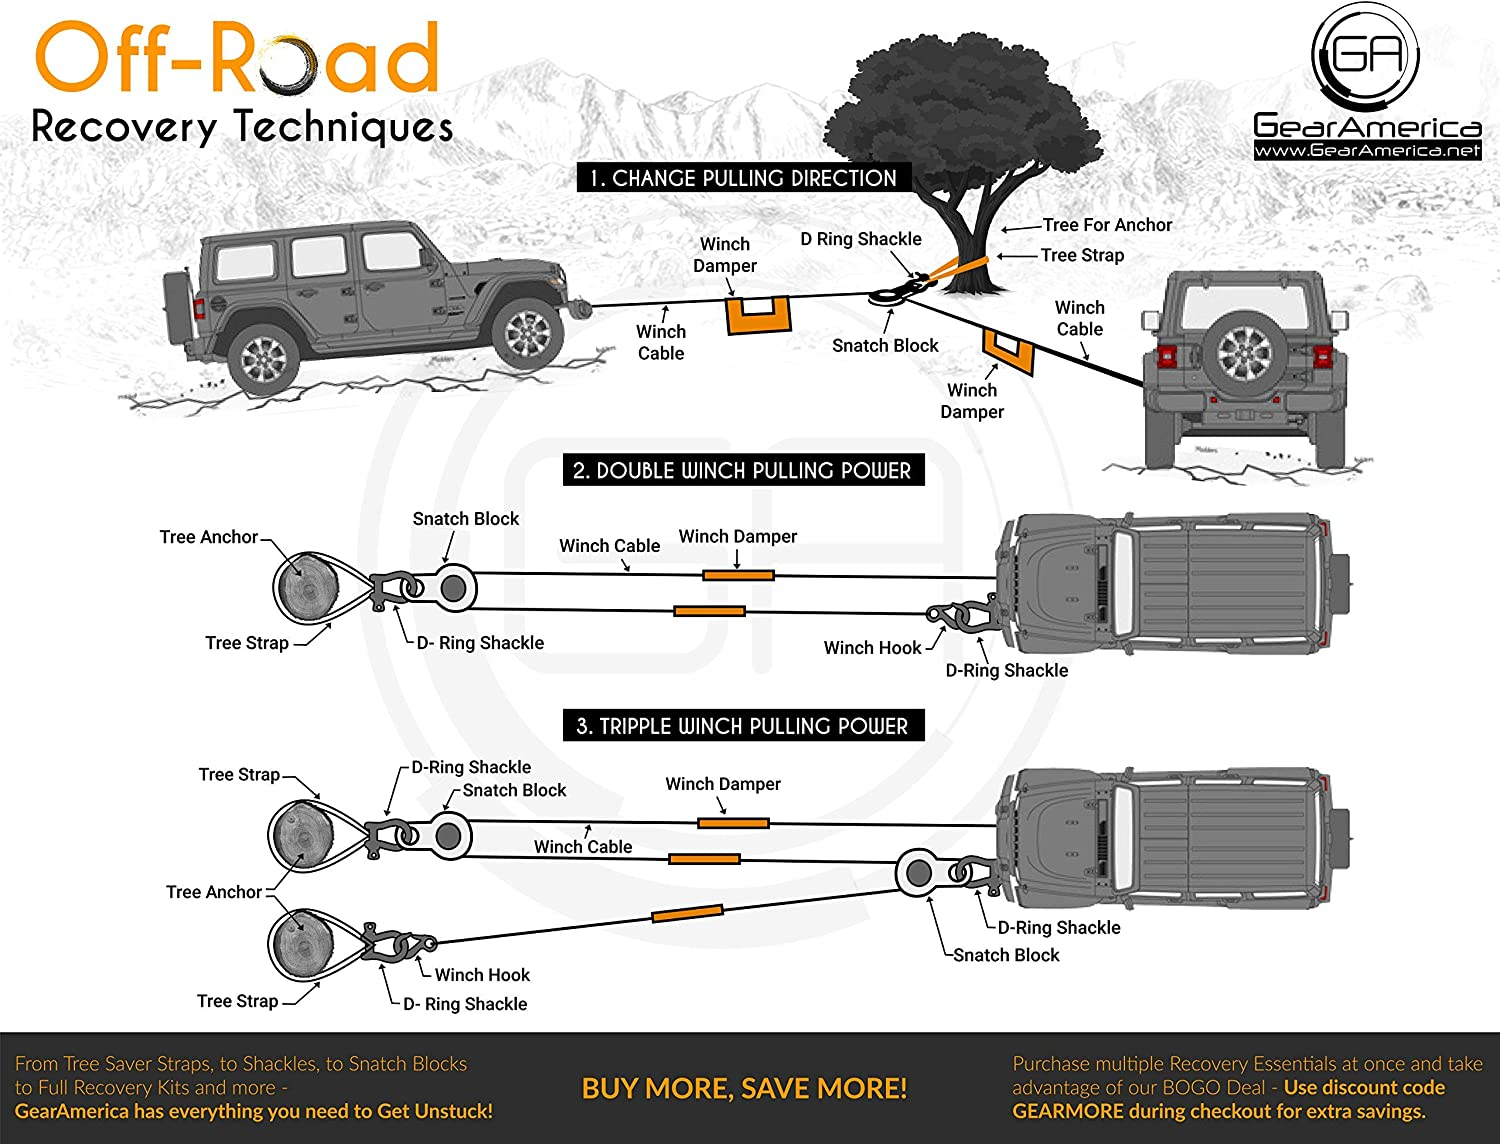 """Tree Saver or Kinetic Rope for Off-Road Recovery Black 10,000 LBS WLL   30,000 LBS MBC Connect Tow Strap   No Rust Anchor Points Superior to /¾/"""" D-Rings GearAmerica Aluminum Alloy ULTRA Shackles"""